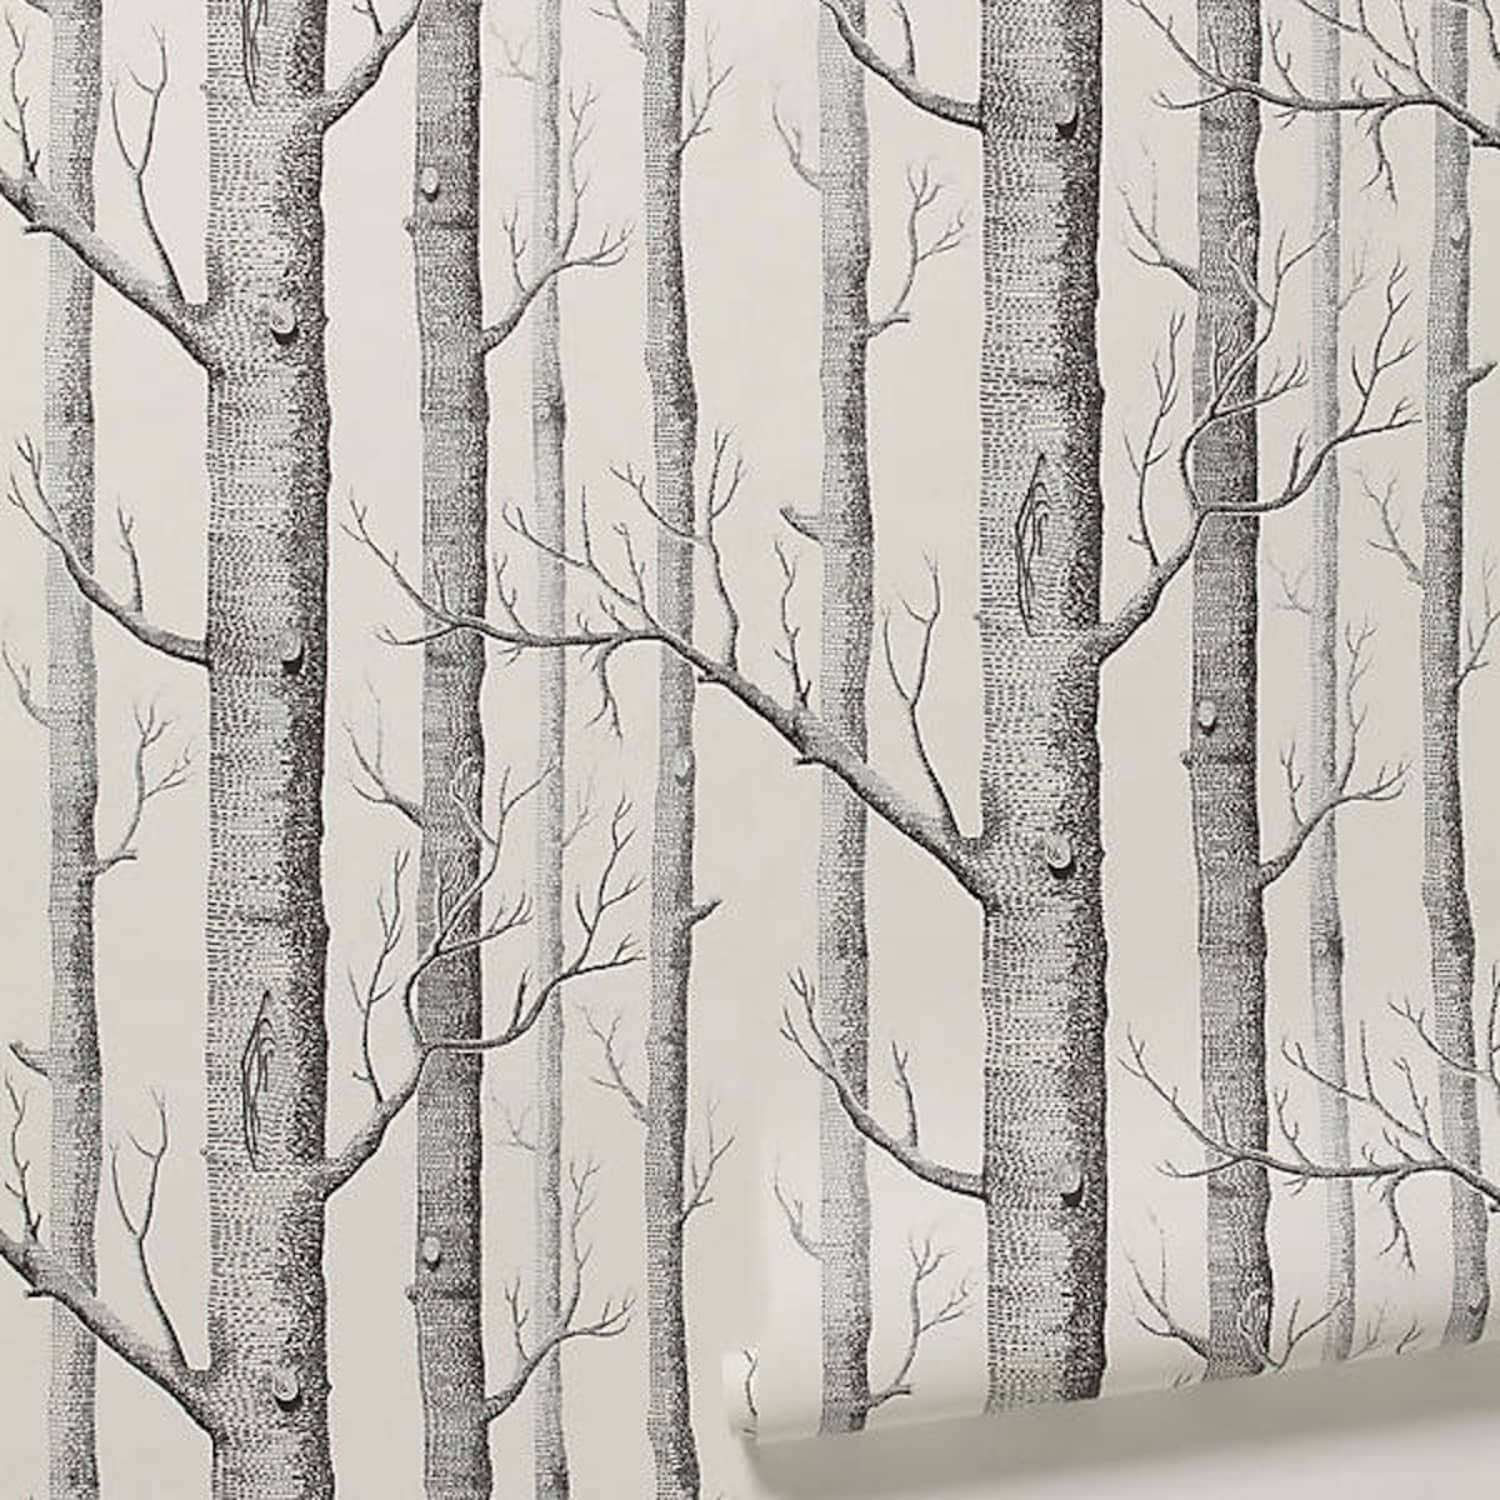 Birch Tree Wallpaper – Why This Cool wallpaper Decorating Style Is So Popular